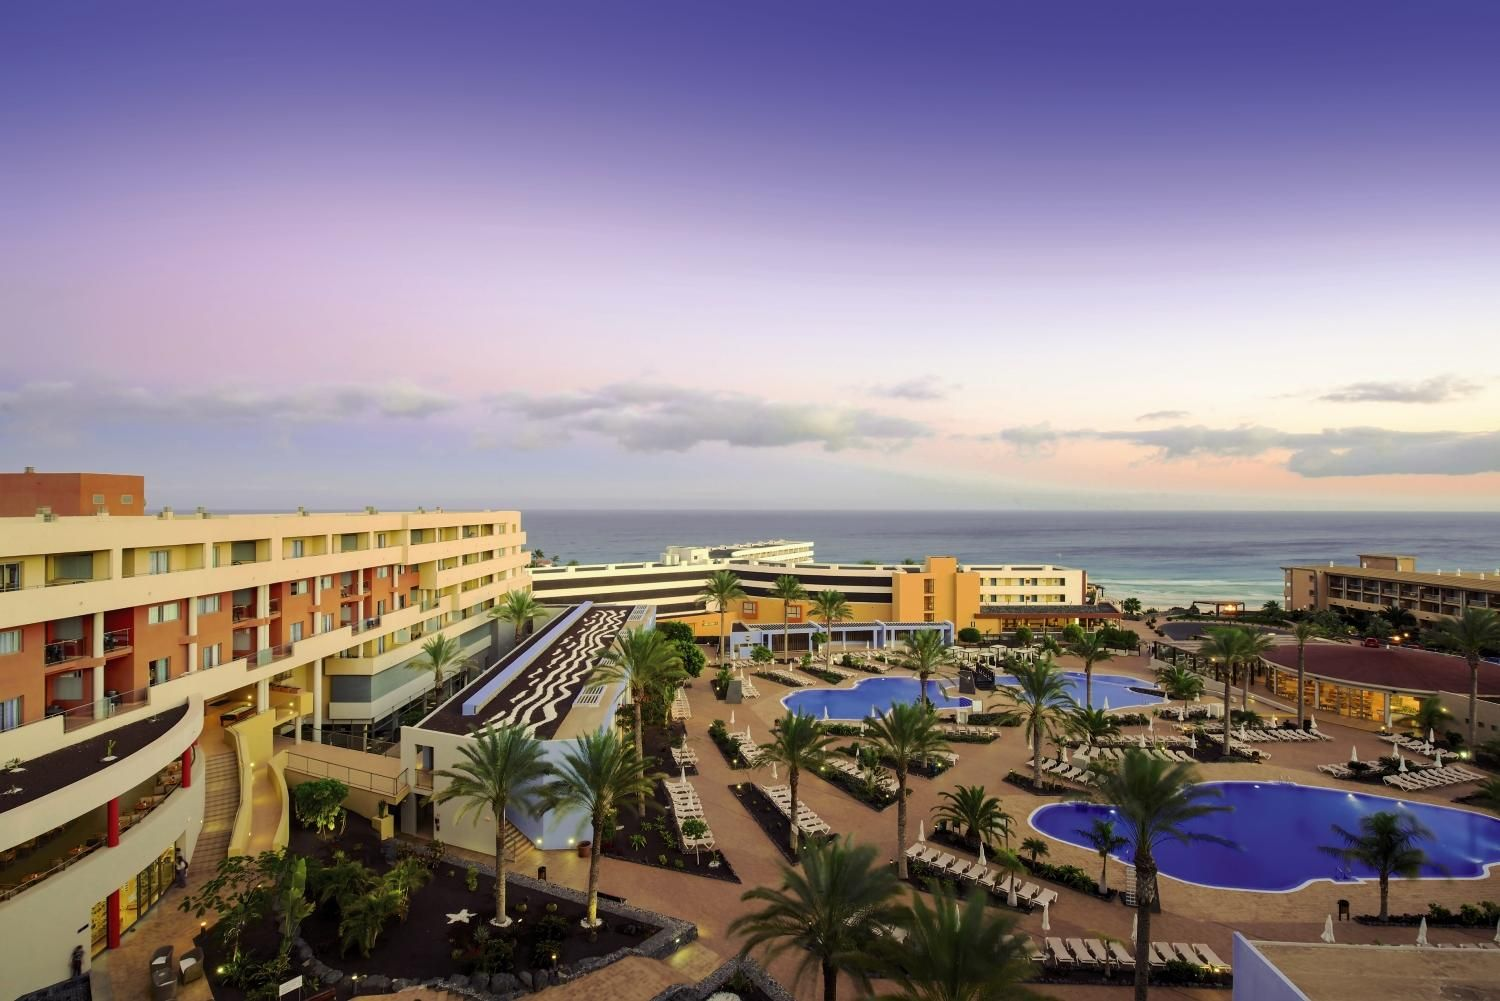 Iberostar Playa Gaviotas Park - 4* pas cher photo 12